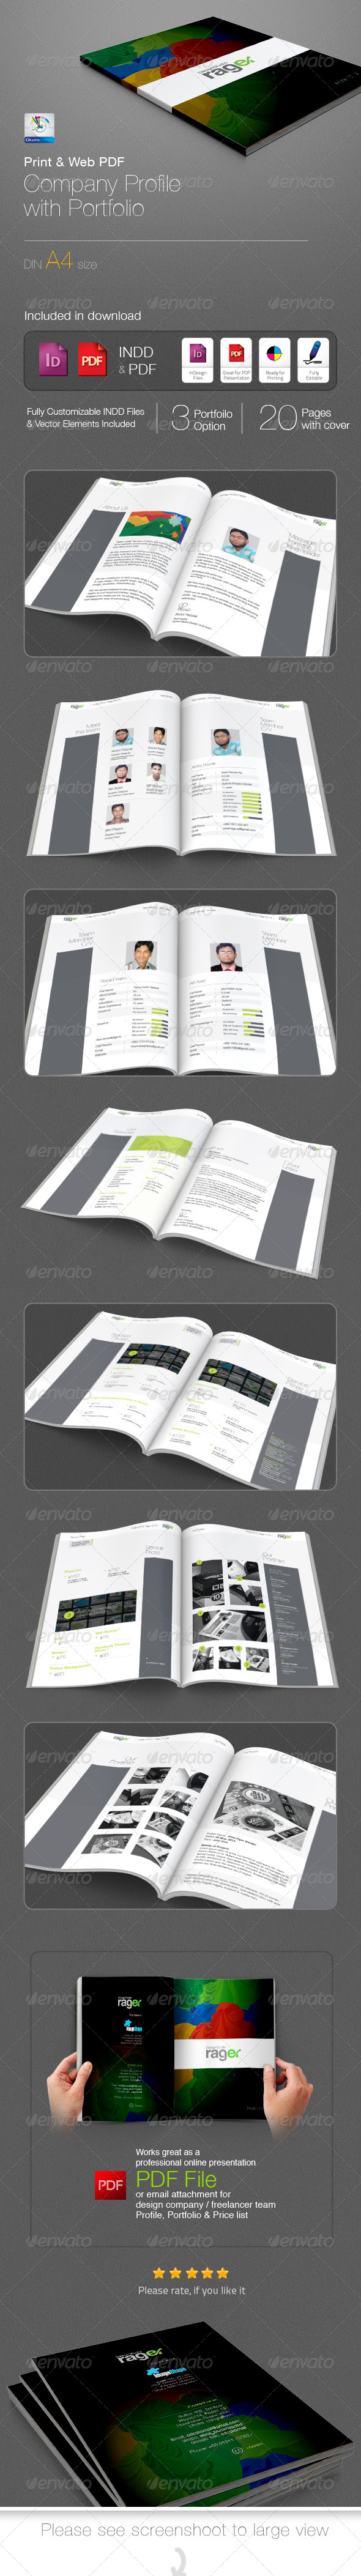 graphic design studio company profile pdf